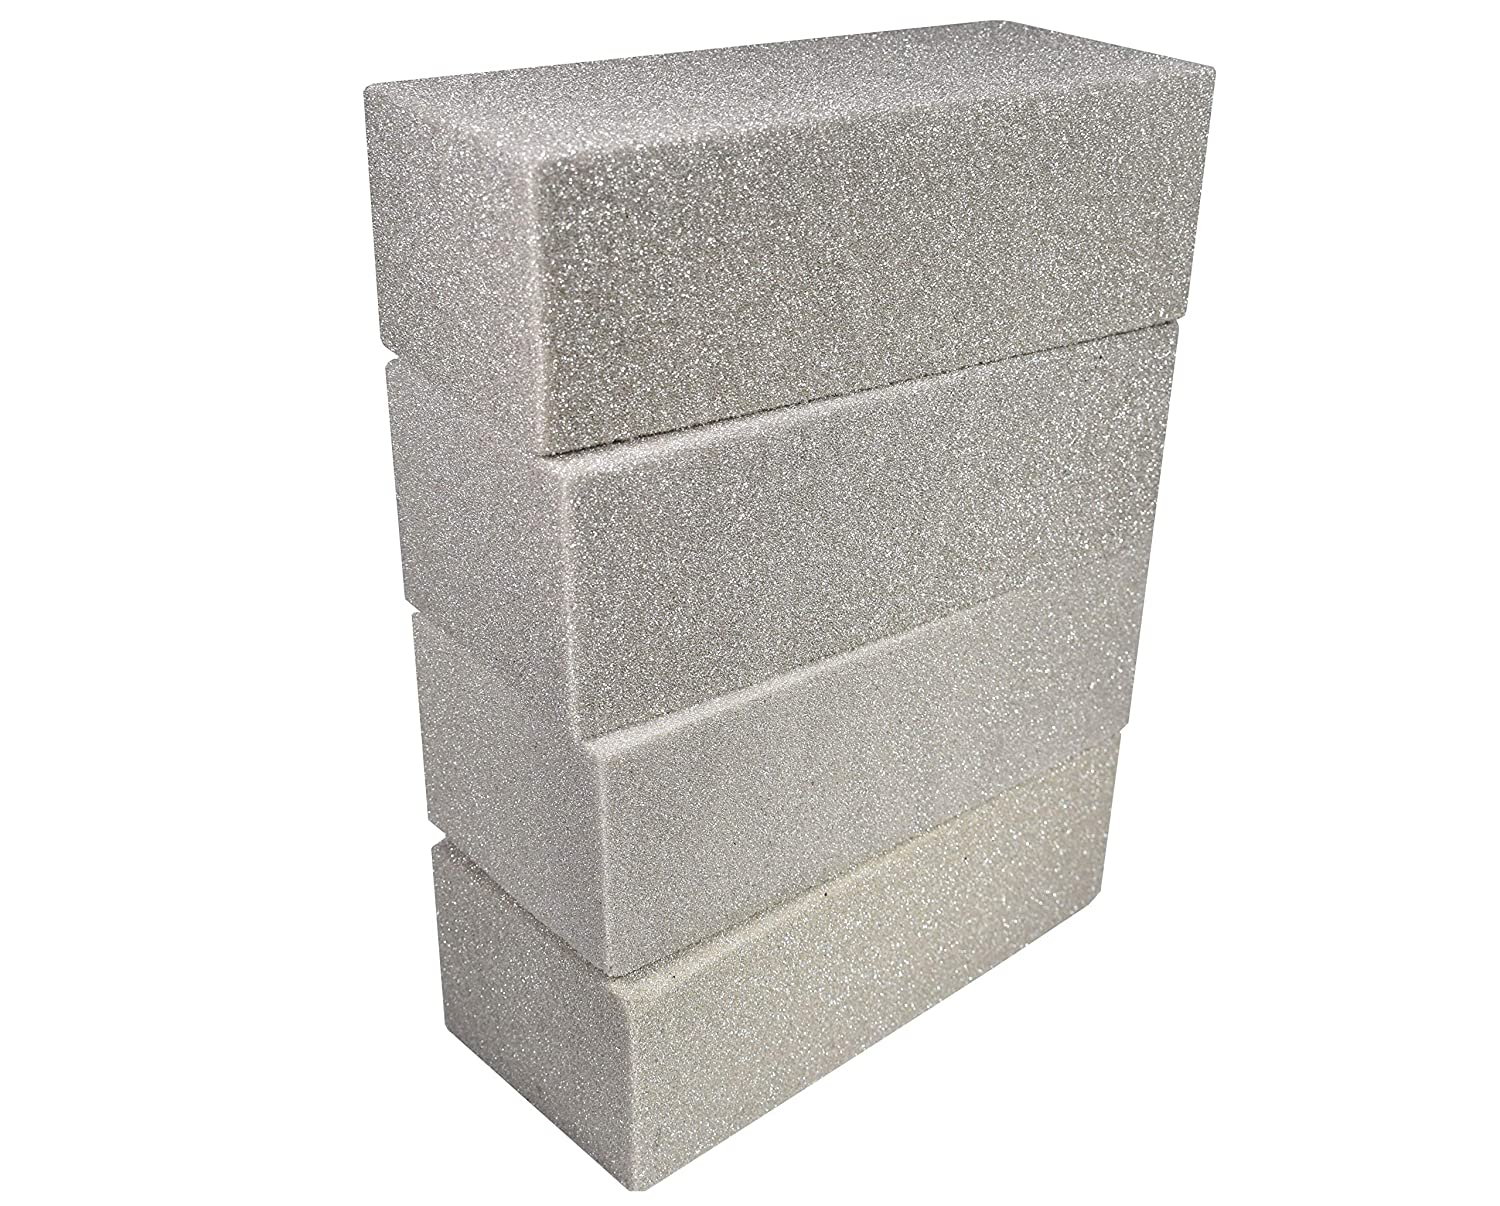 Floral Foam Bricks Extra Sturdy Desert Styrofoam Blocks Craft Base Gray Pack of 4 with 1 Pair of Gloves e-Craft